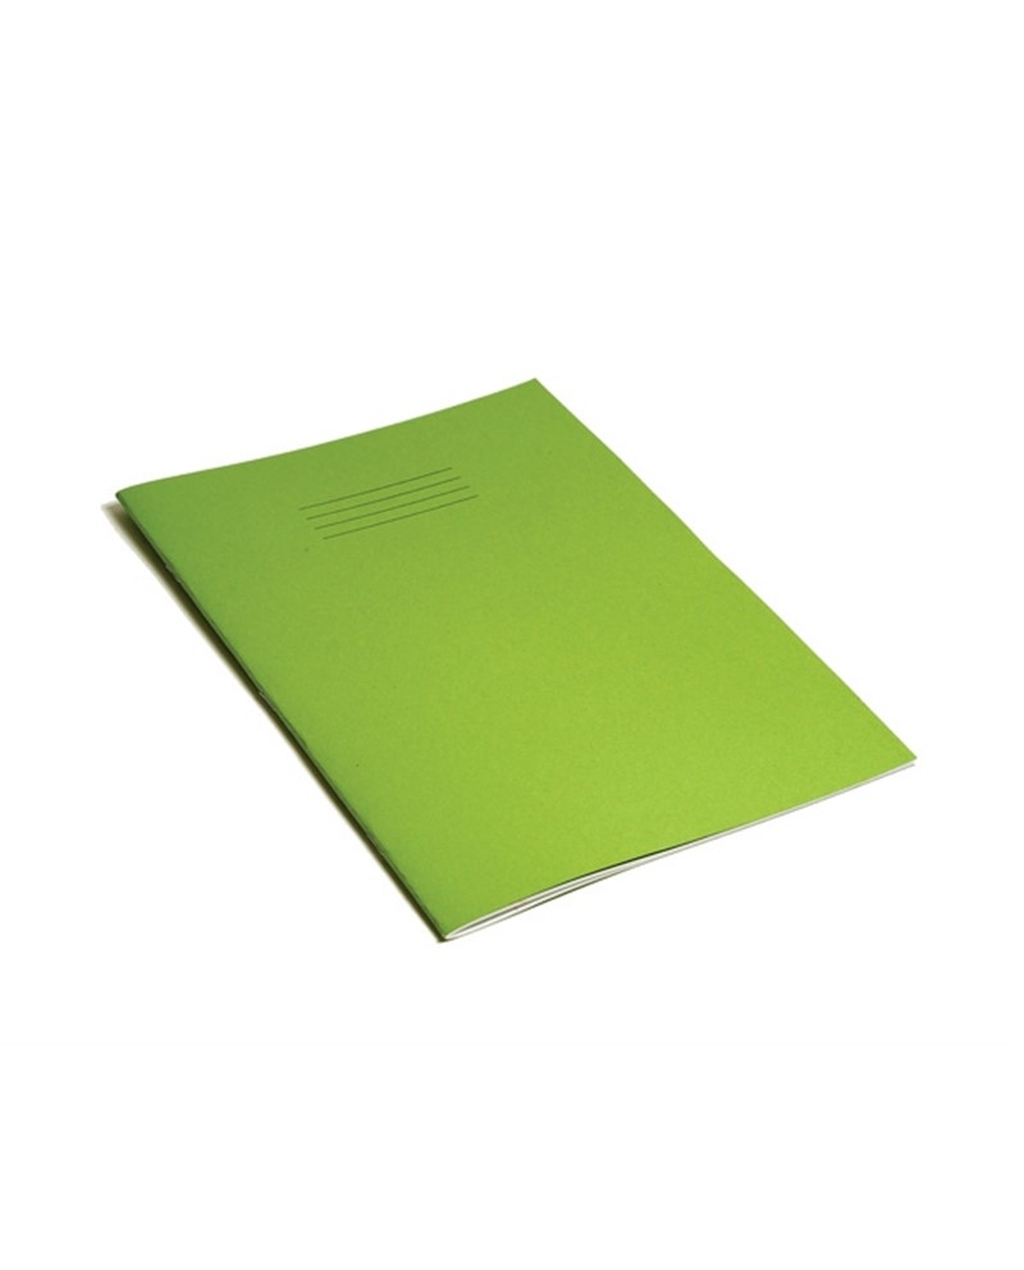 Exercise Book A4 (297 x 210mm) Light Green Cover 10mm Squares 80 Pages